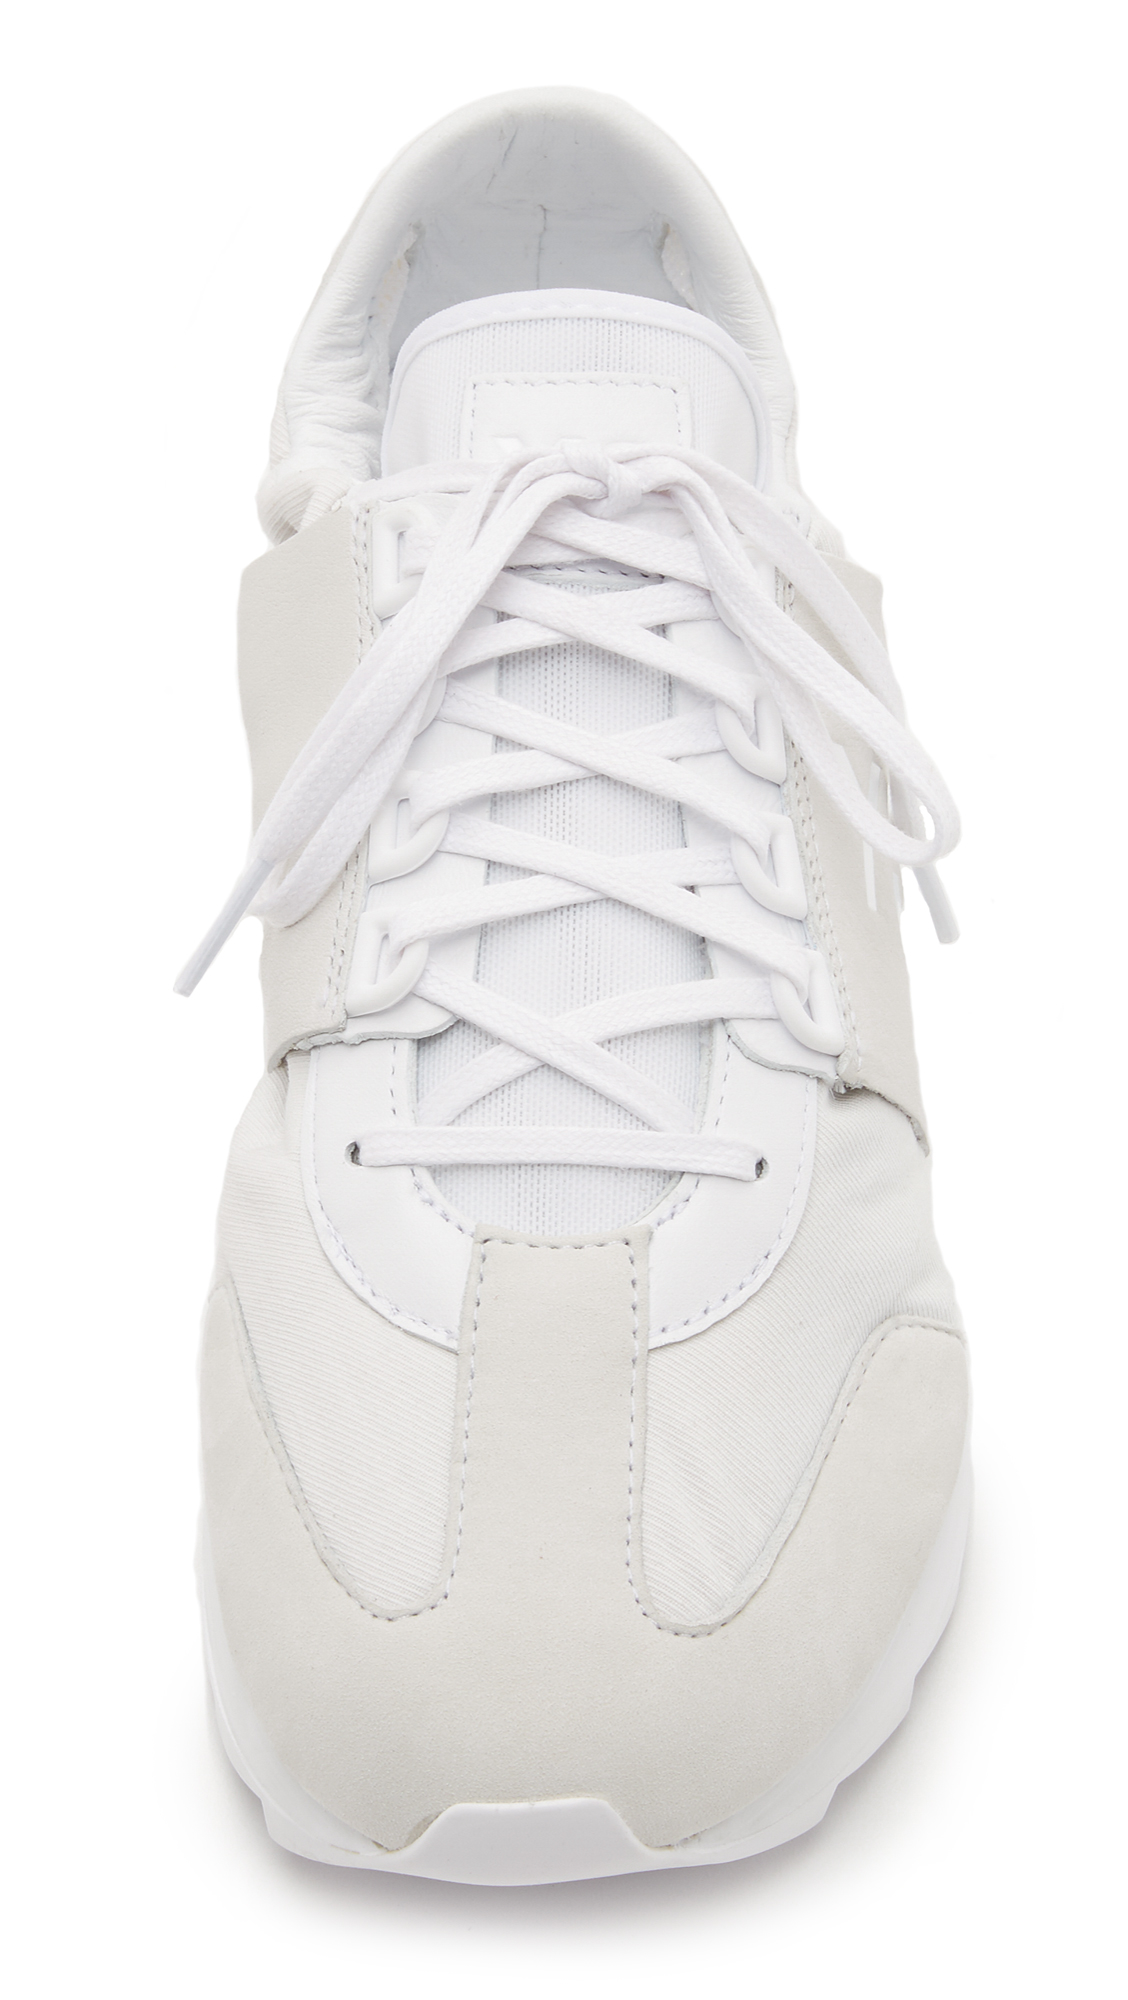 a56ea933fb818 Lyst - Y-3 Rhita Sport Sneakers in White